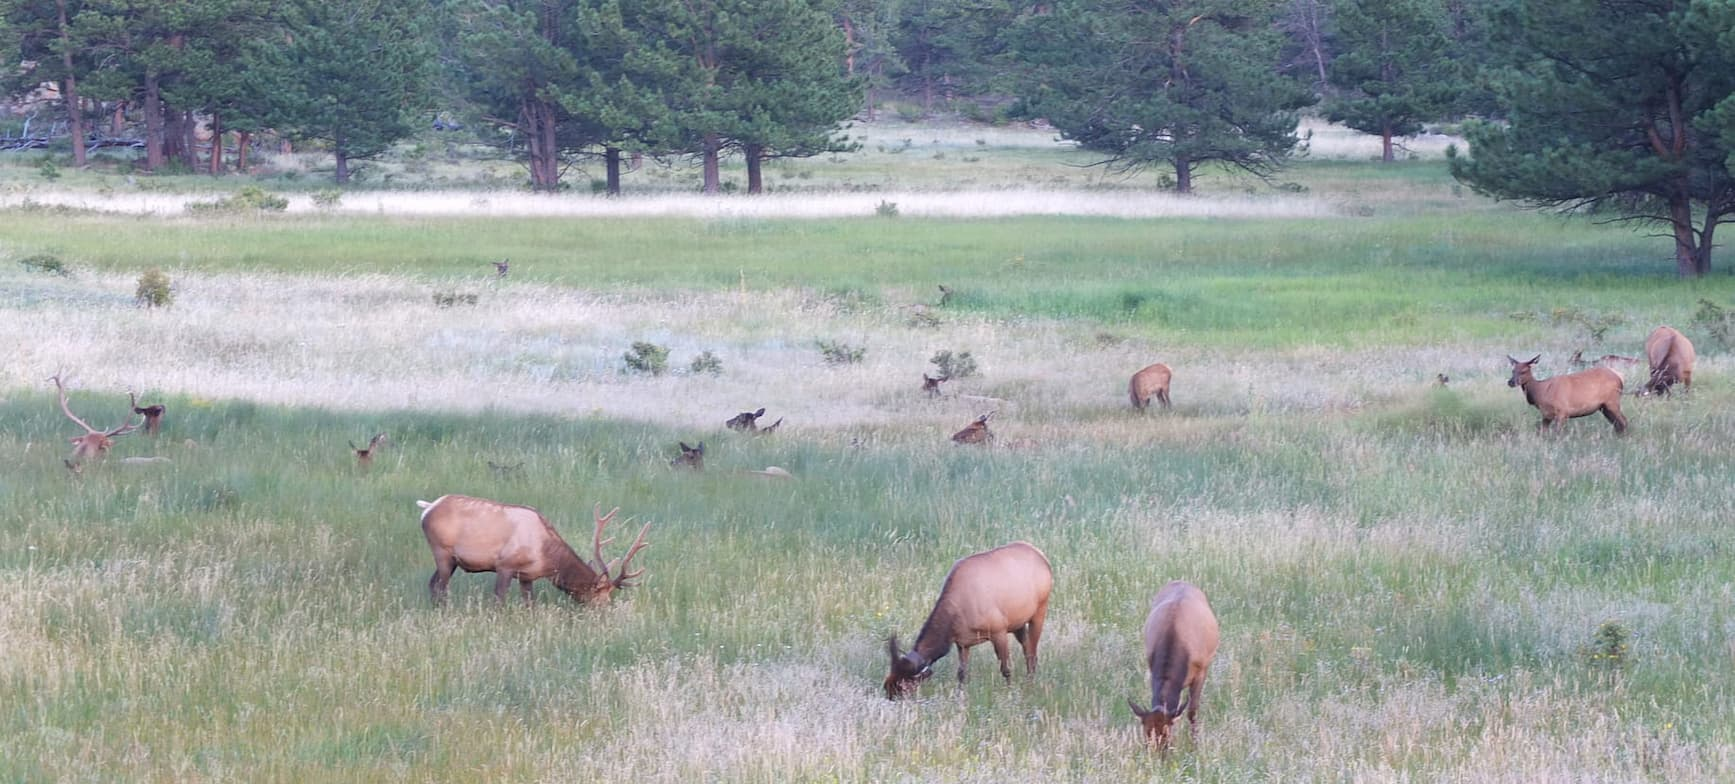 Herd of wapitis in a Rocky Mountains vallery in Colorado.